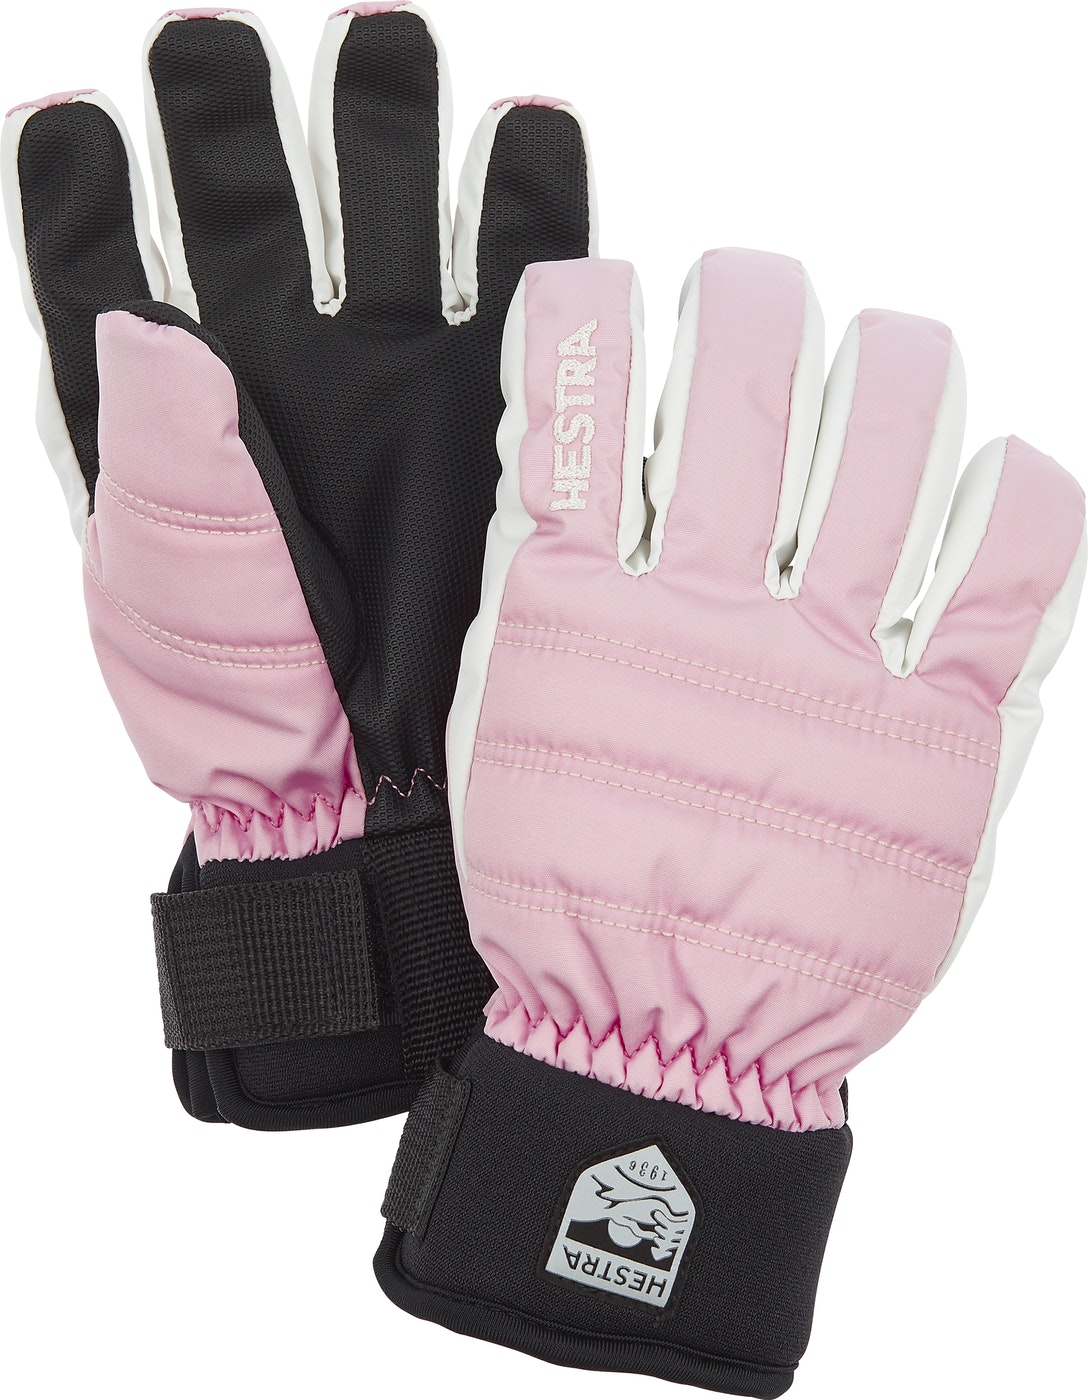 Product image for 32900 CZone Primaloft Jr.